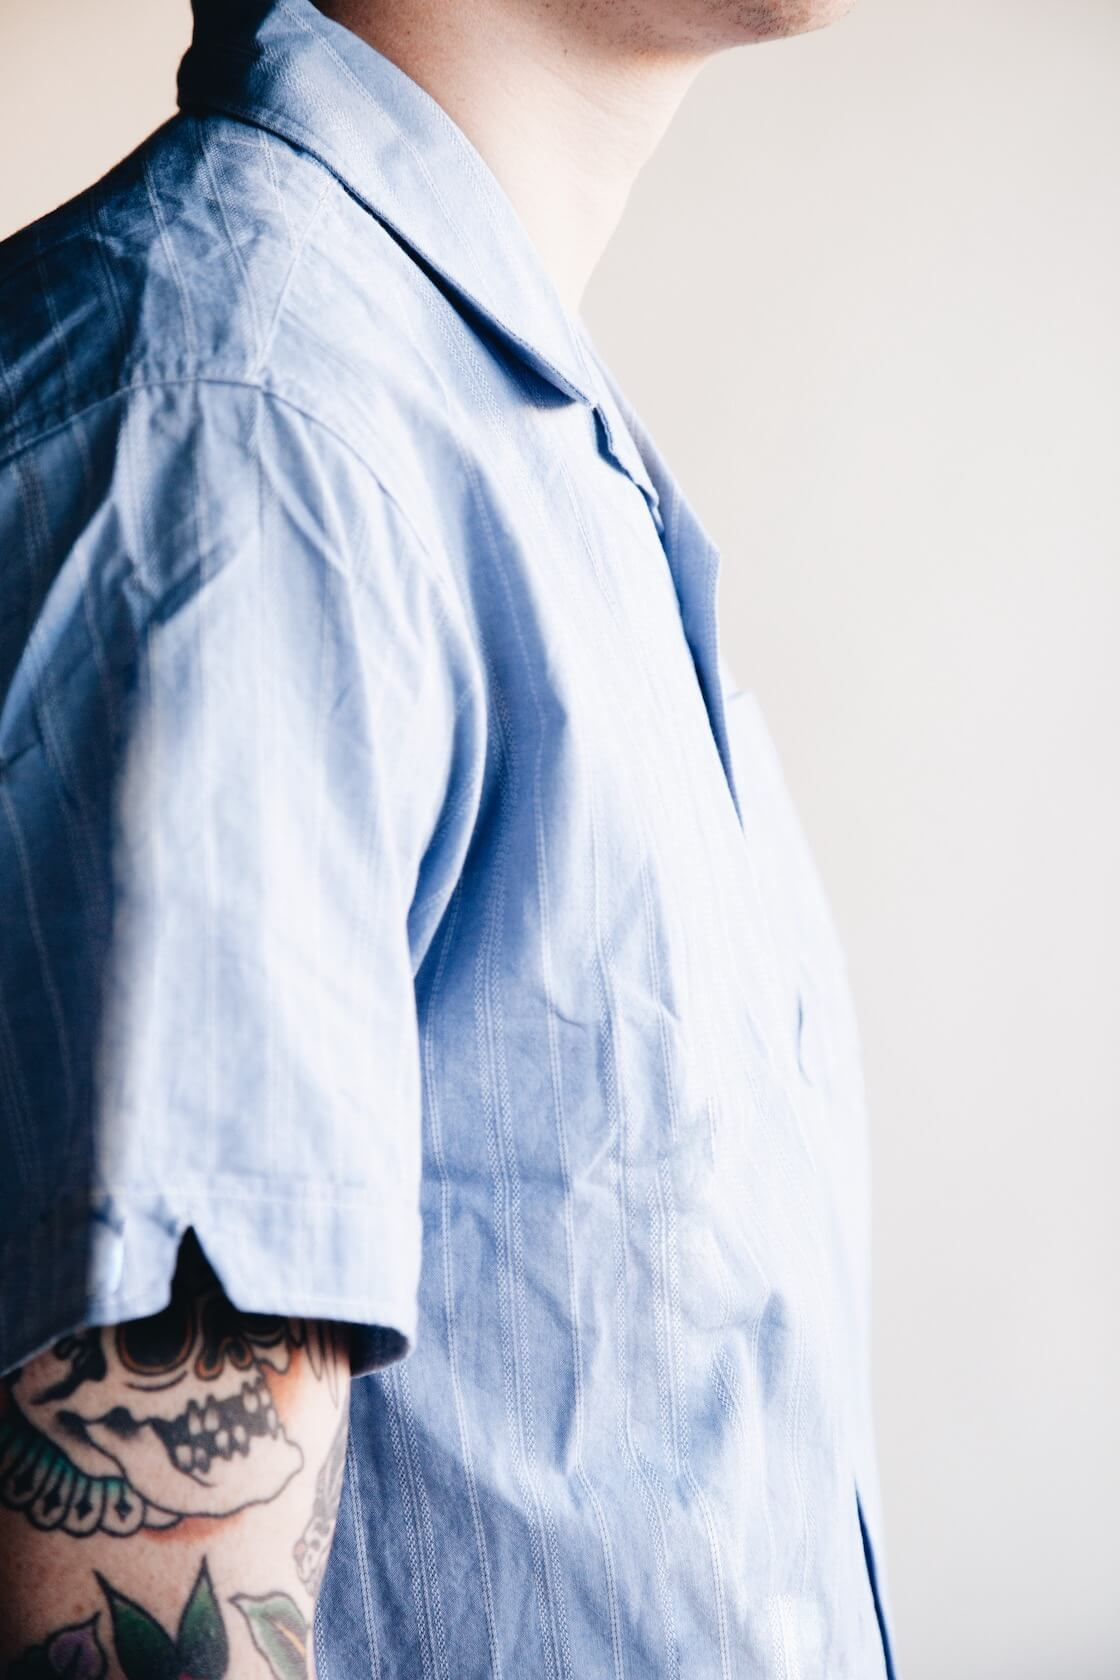 engineered garments camp shirt on body